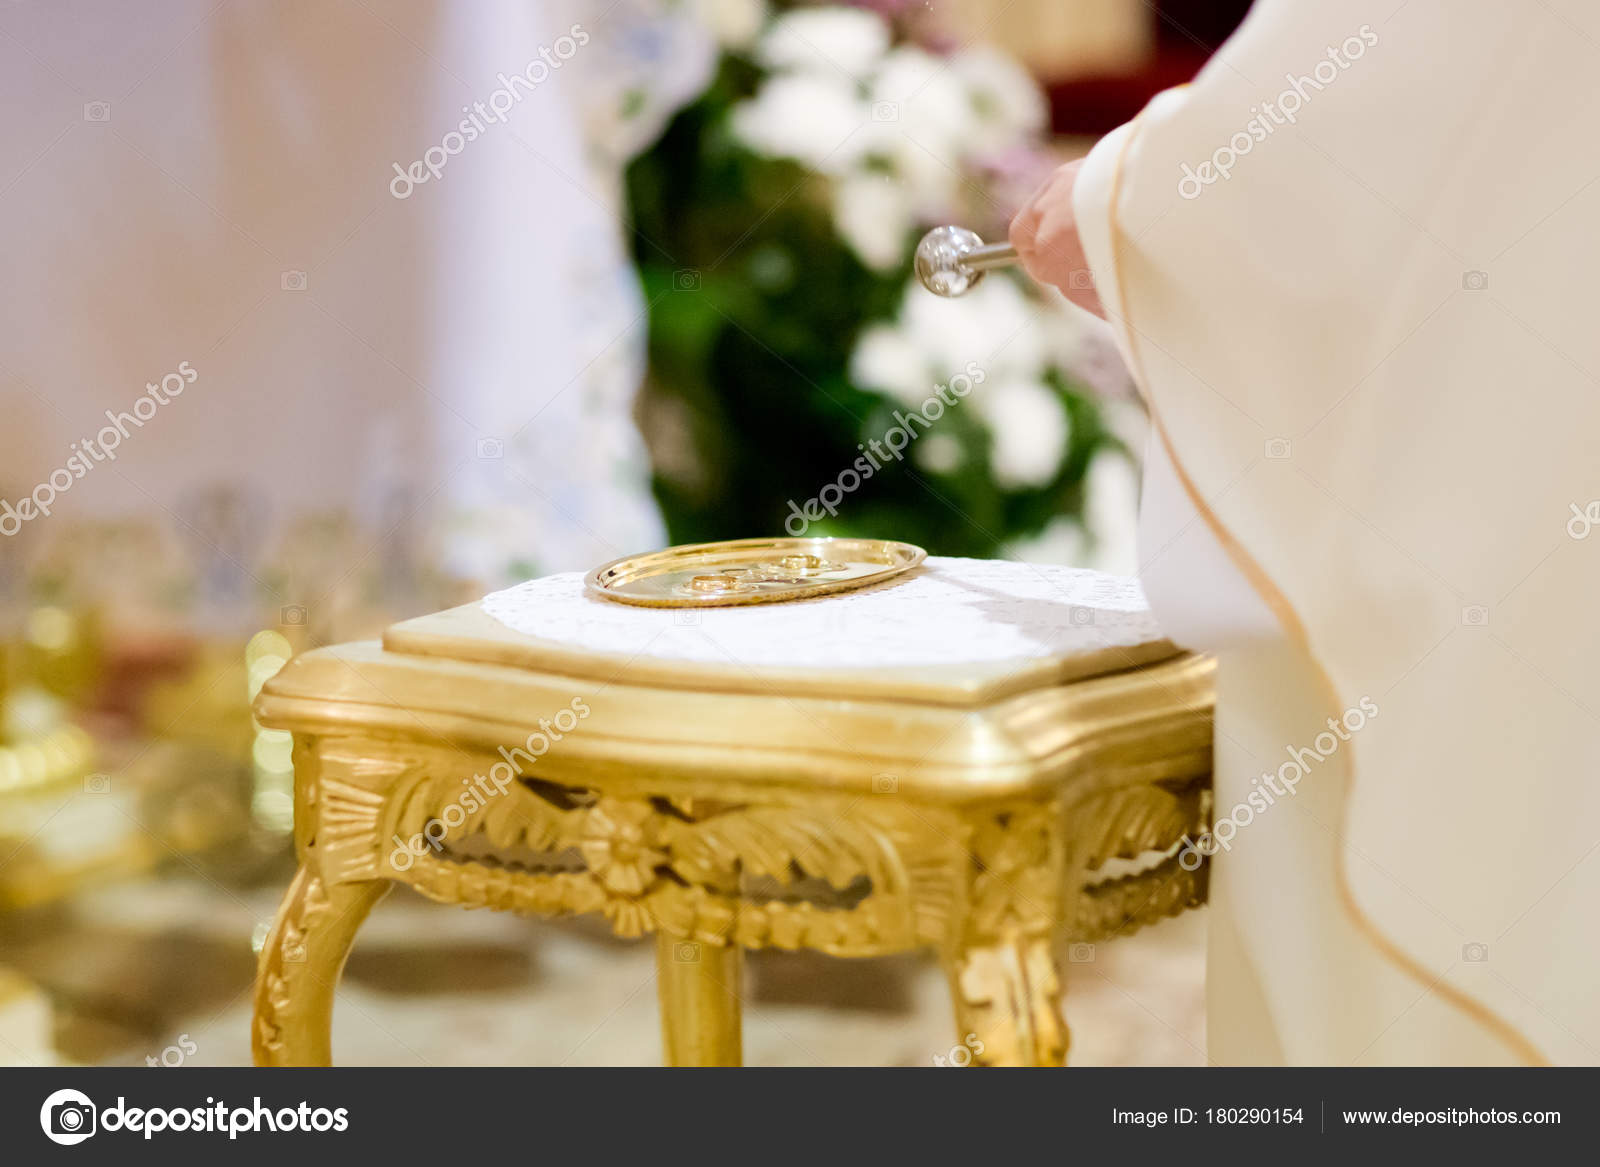 wedding christian detaill blessing free church rings download prist water in image marriage royalty stock of photo traditionally